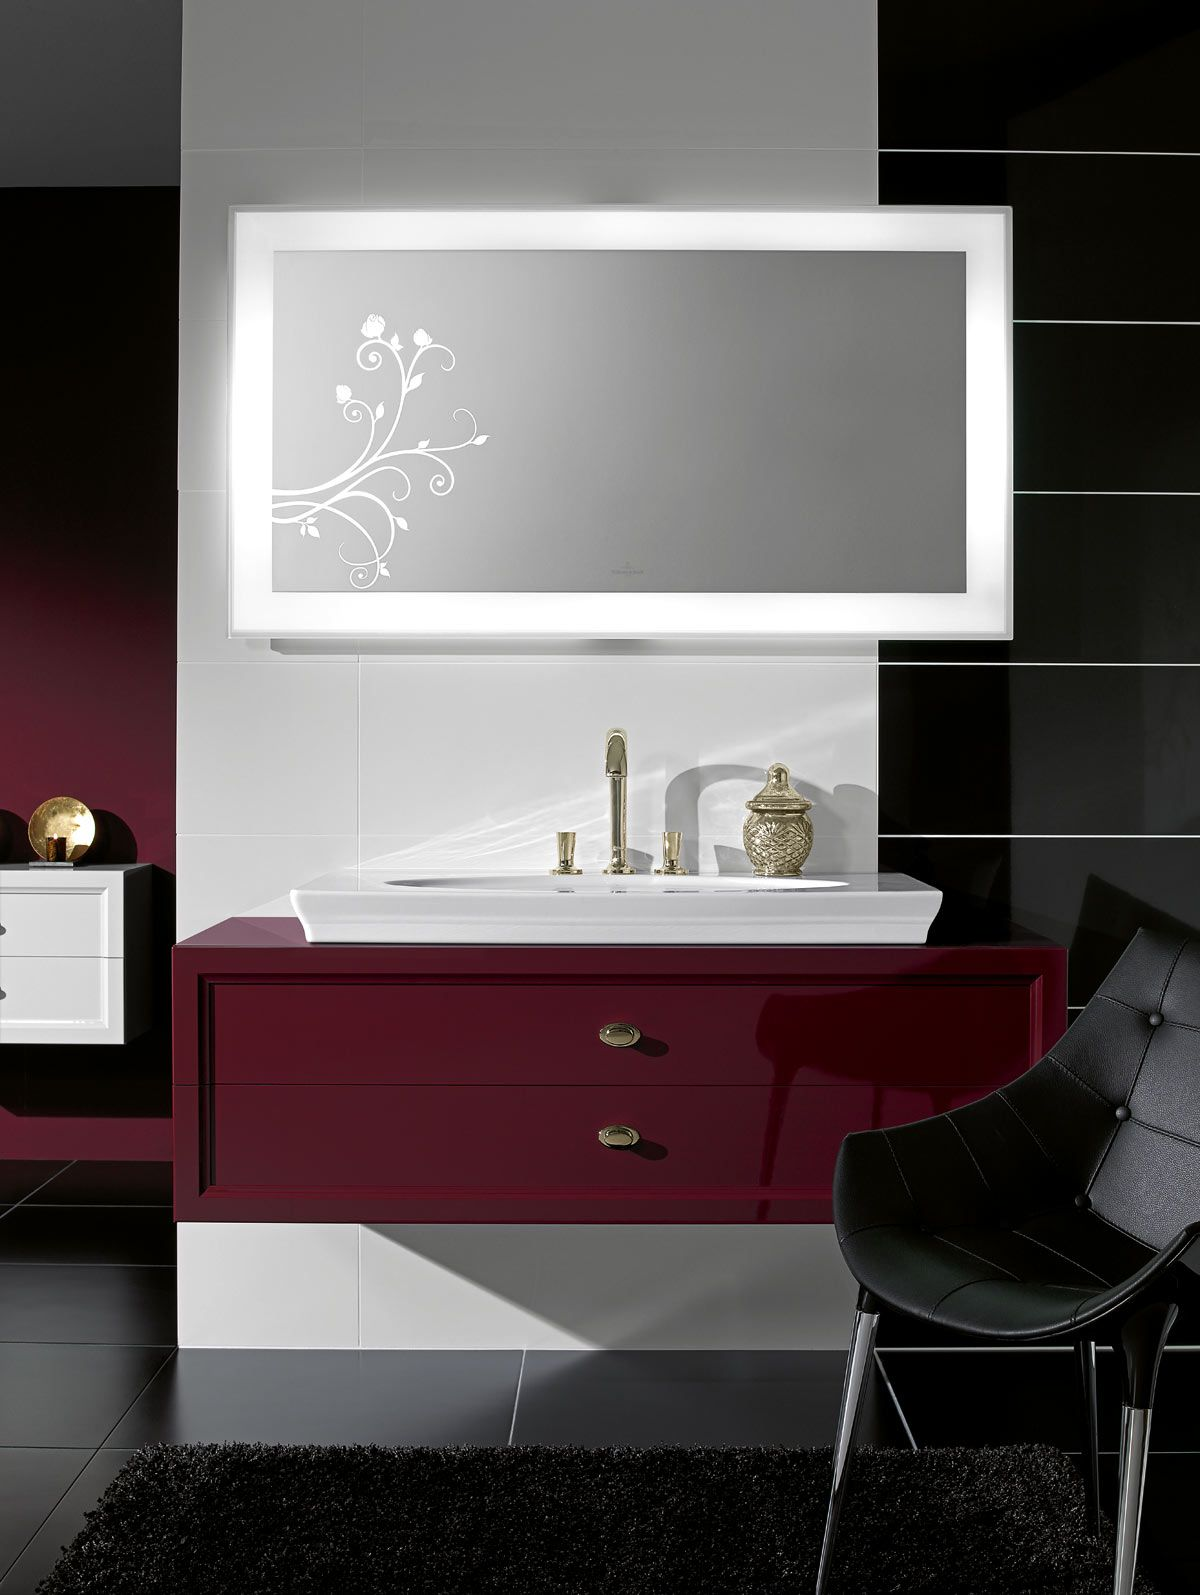 villeroy boch la belle furniture in framboise glaze - Villeroy And Boch Bathroom Furniture